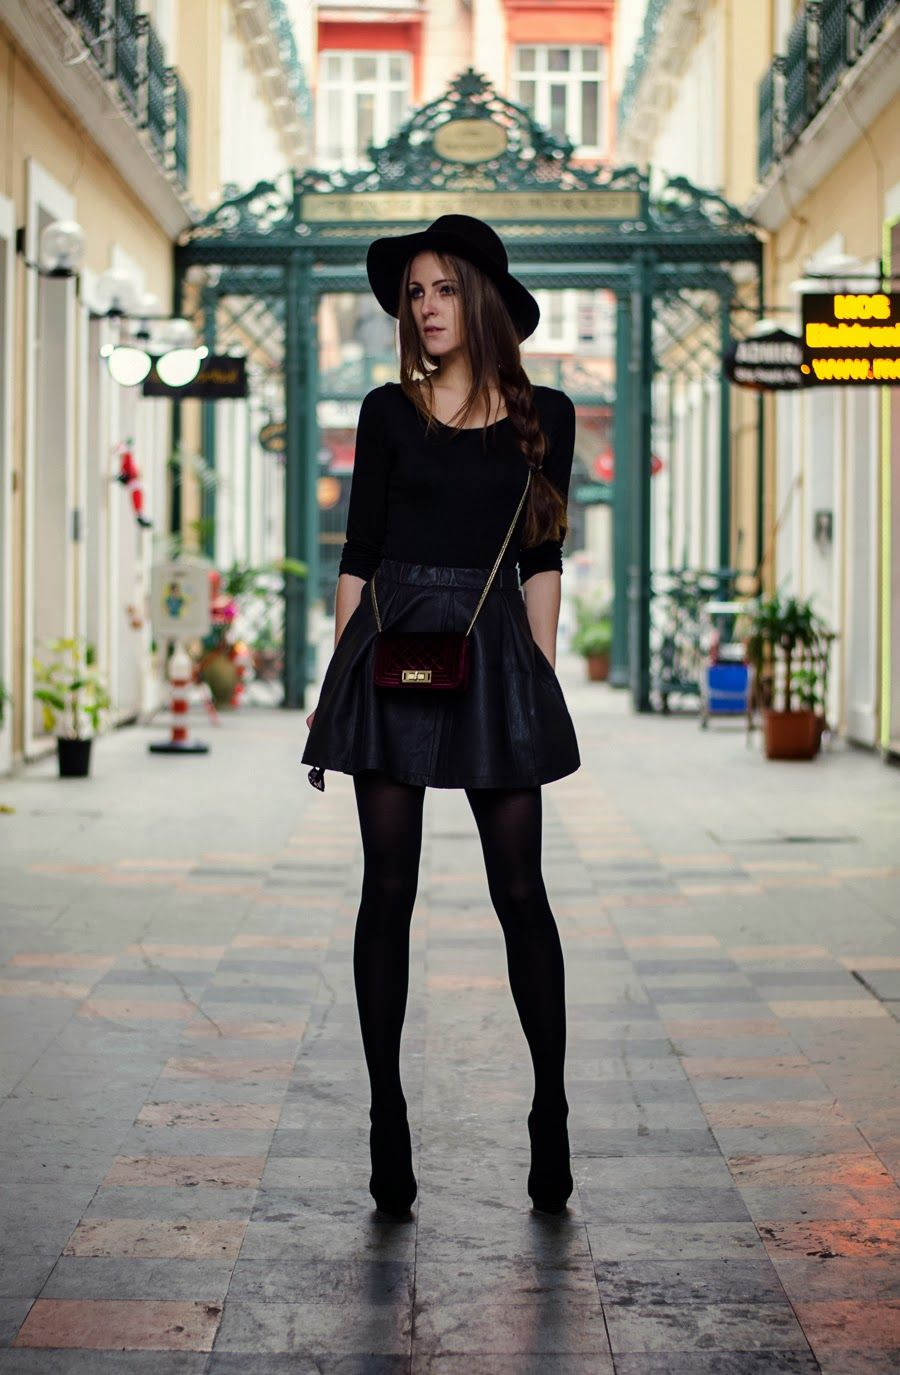 Katerina Kraynova: Glam Rock Fashion Style | Rockers, Rock chic ...